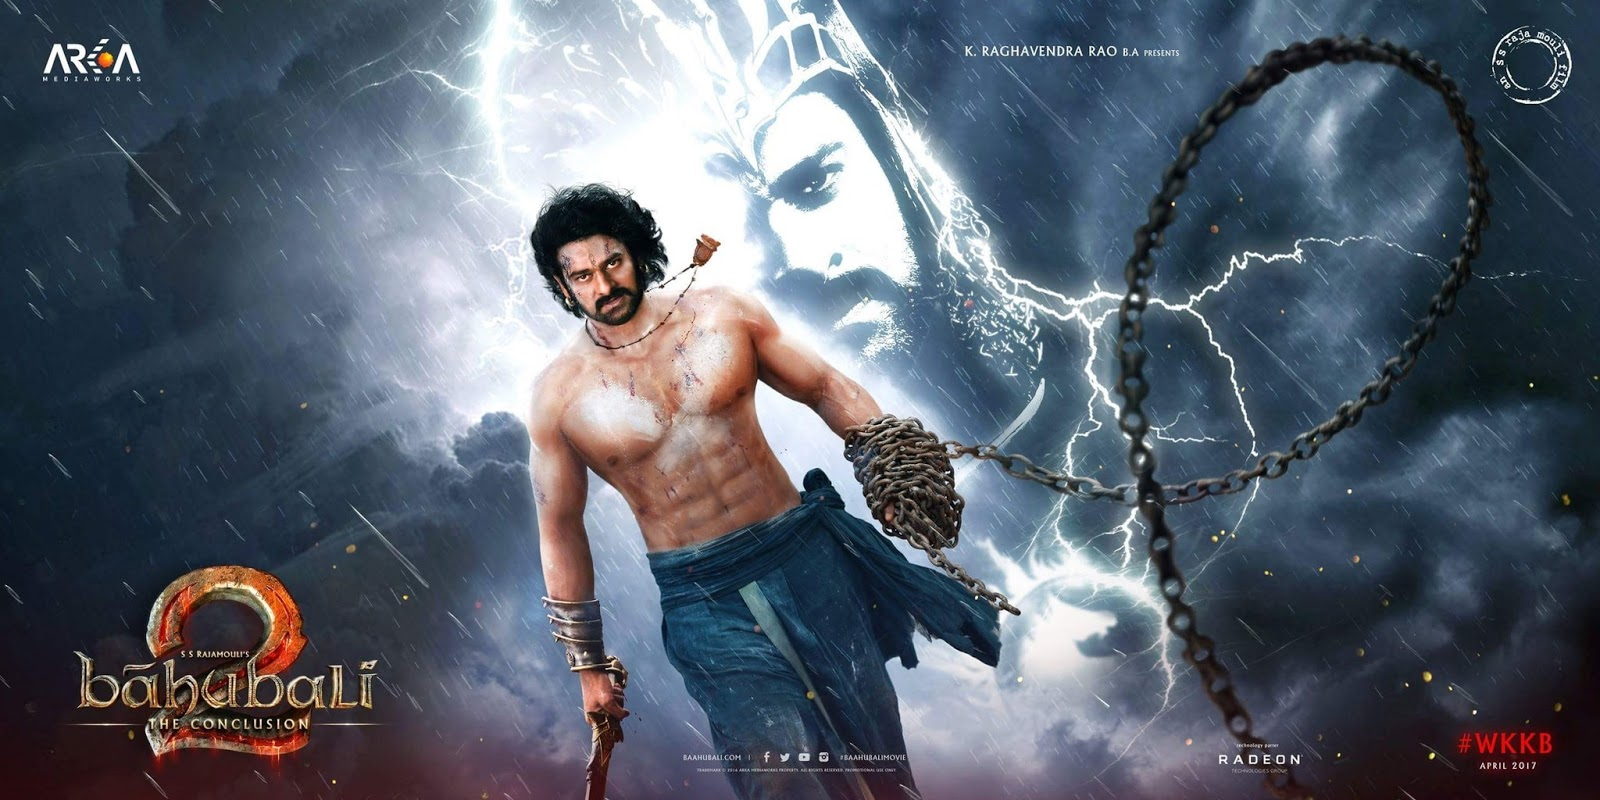 Complete cast and crew of Baahubali: The Conclusion (2017) bollywood hindi movie wiki, poster, Trailer, music list - Prabhas and Anushka Shetty, Movie release date 28 April 2017